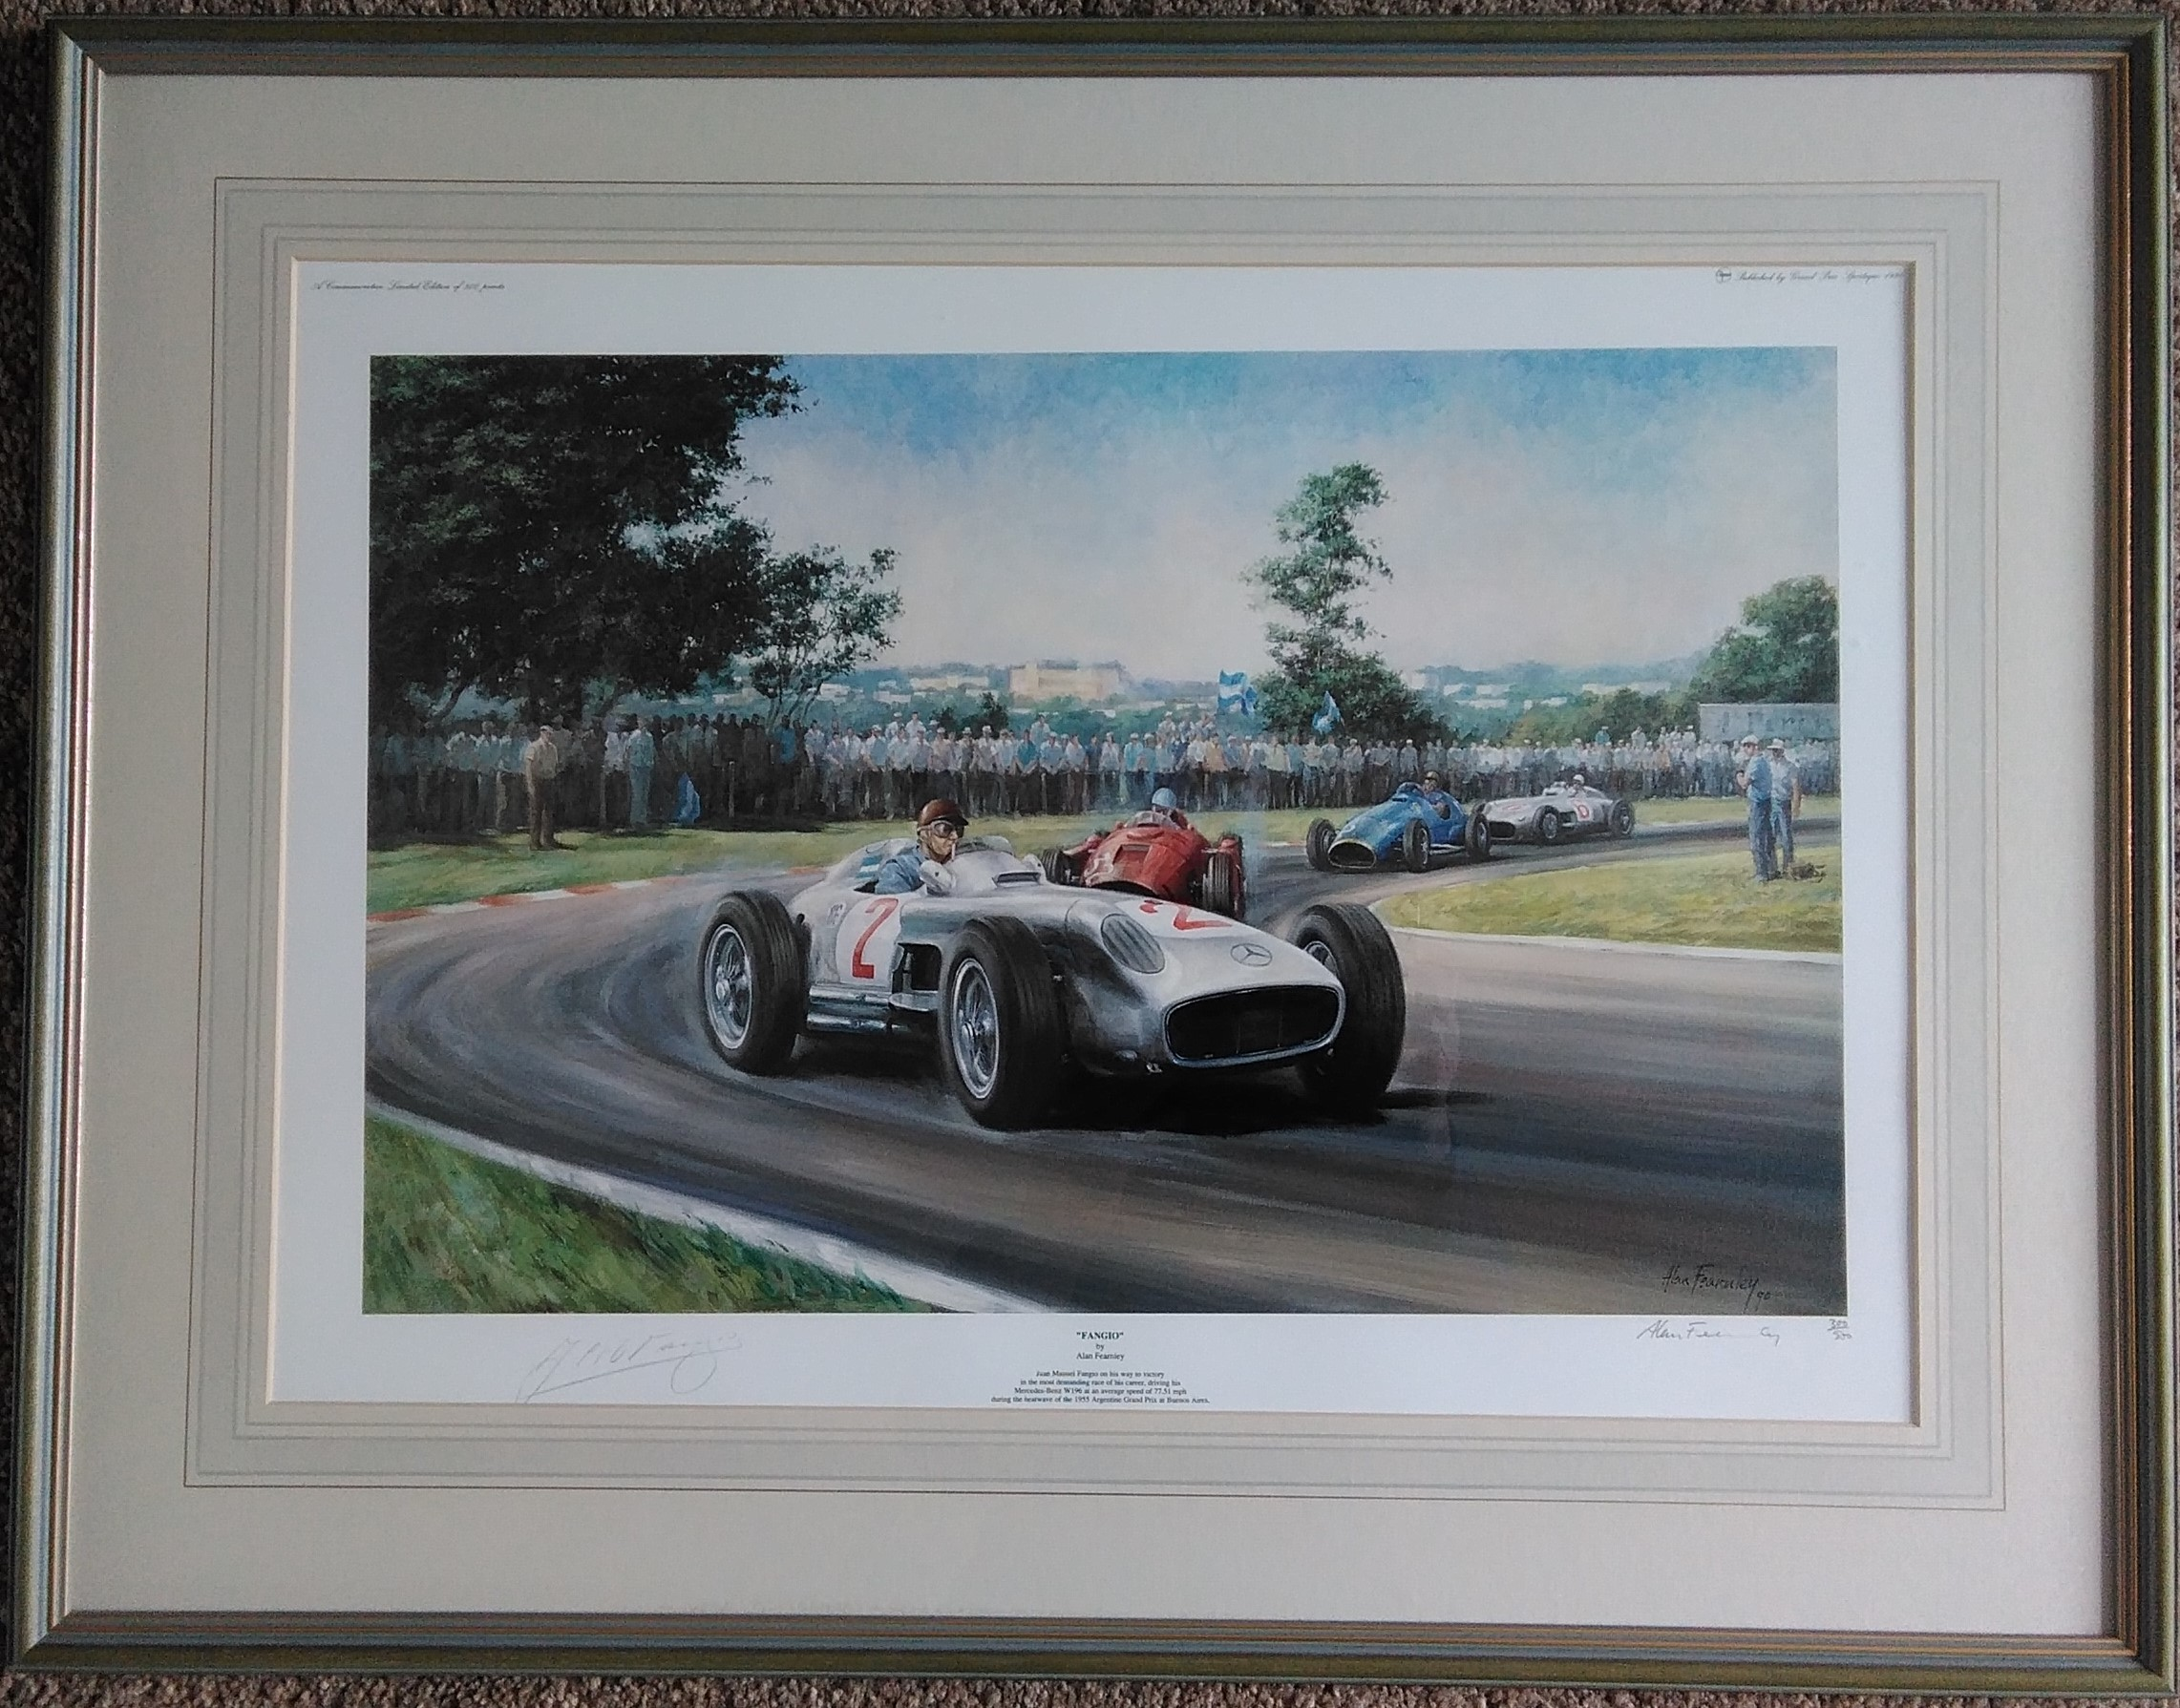 Alan Fearnley 'Fangio'-Fangio Signed